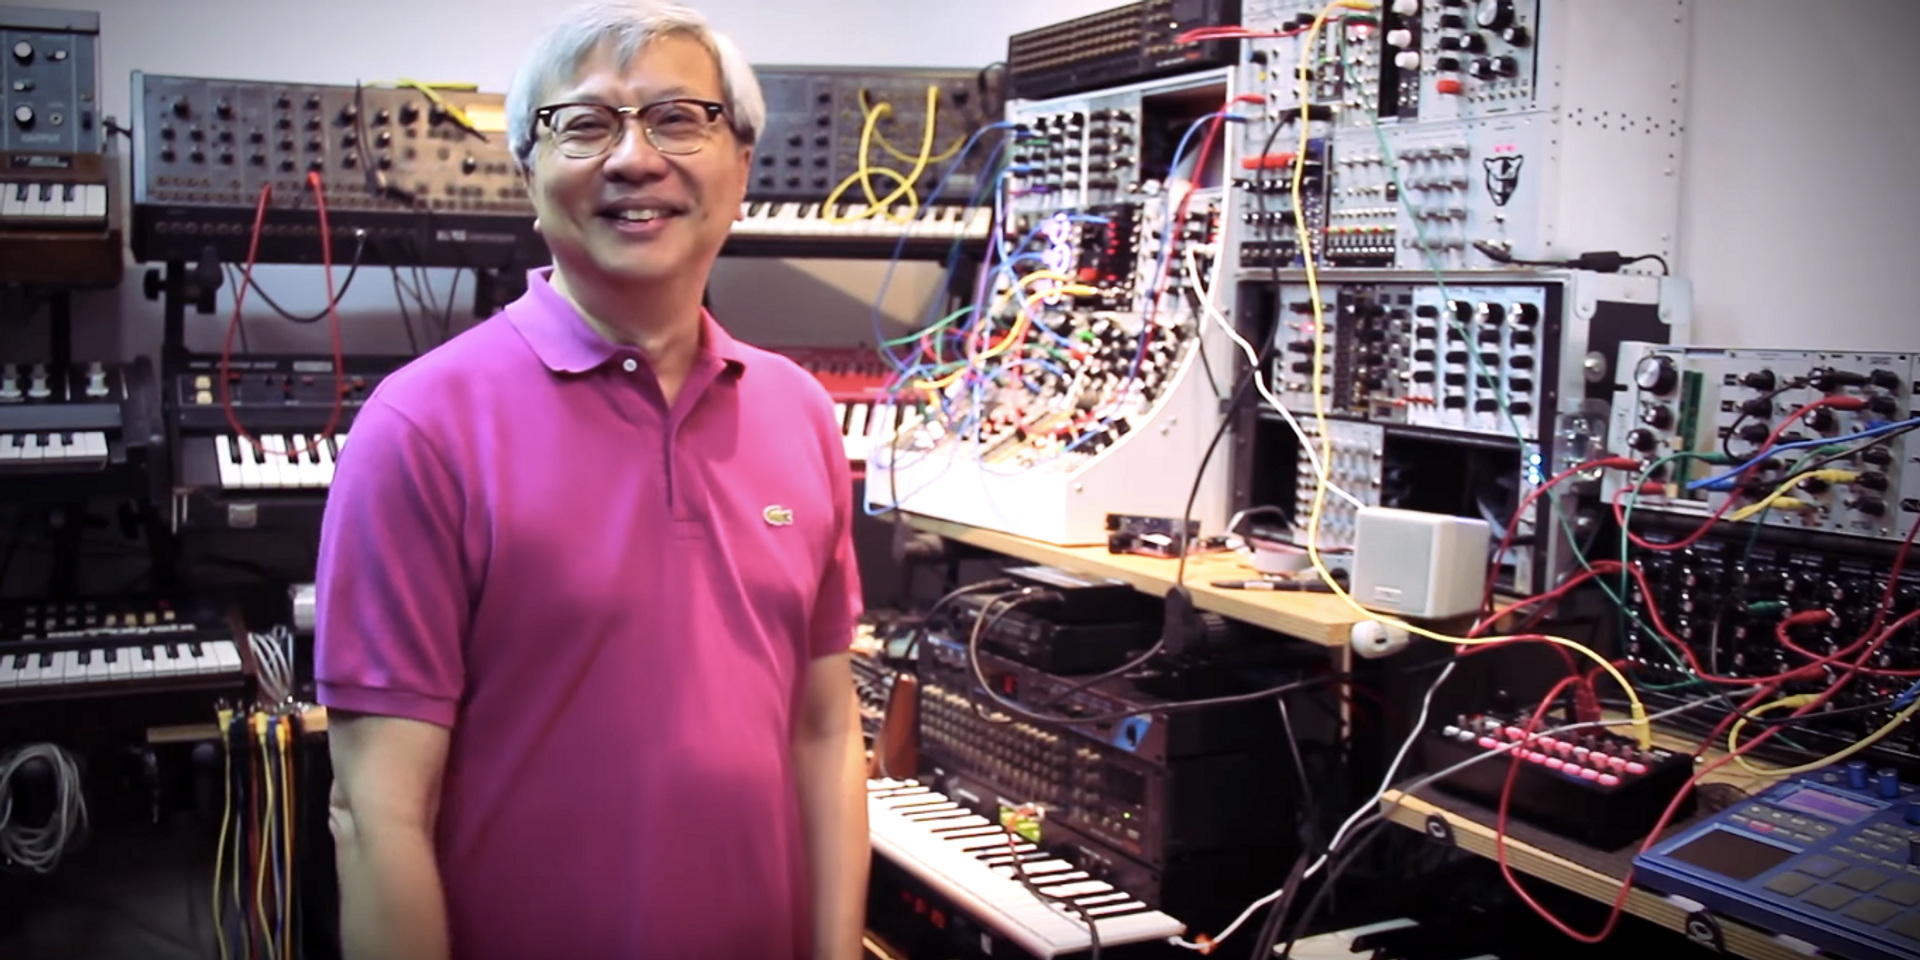 WATCH: This Singaporean's astounding vintage synth collection